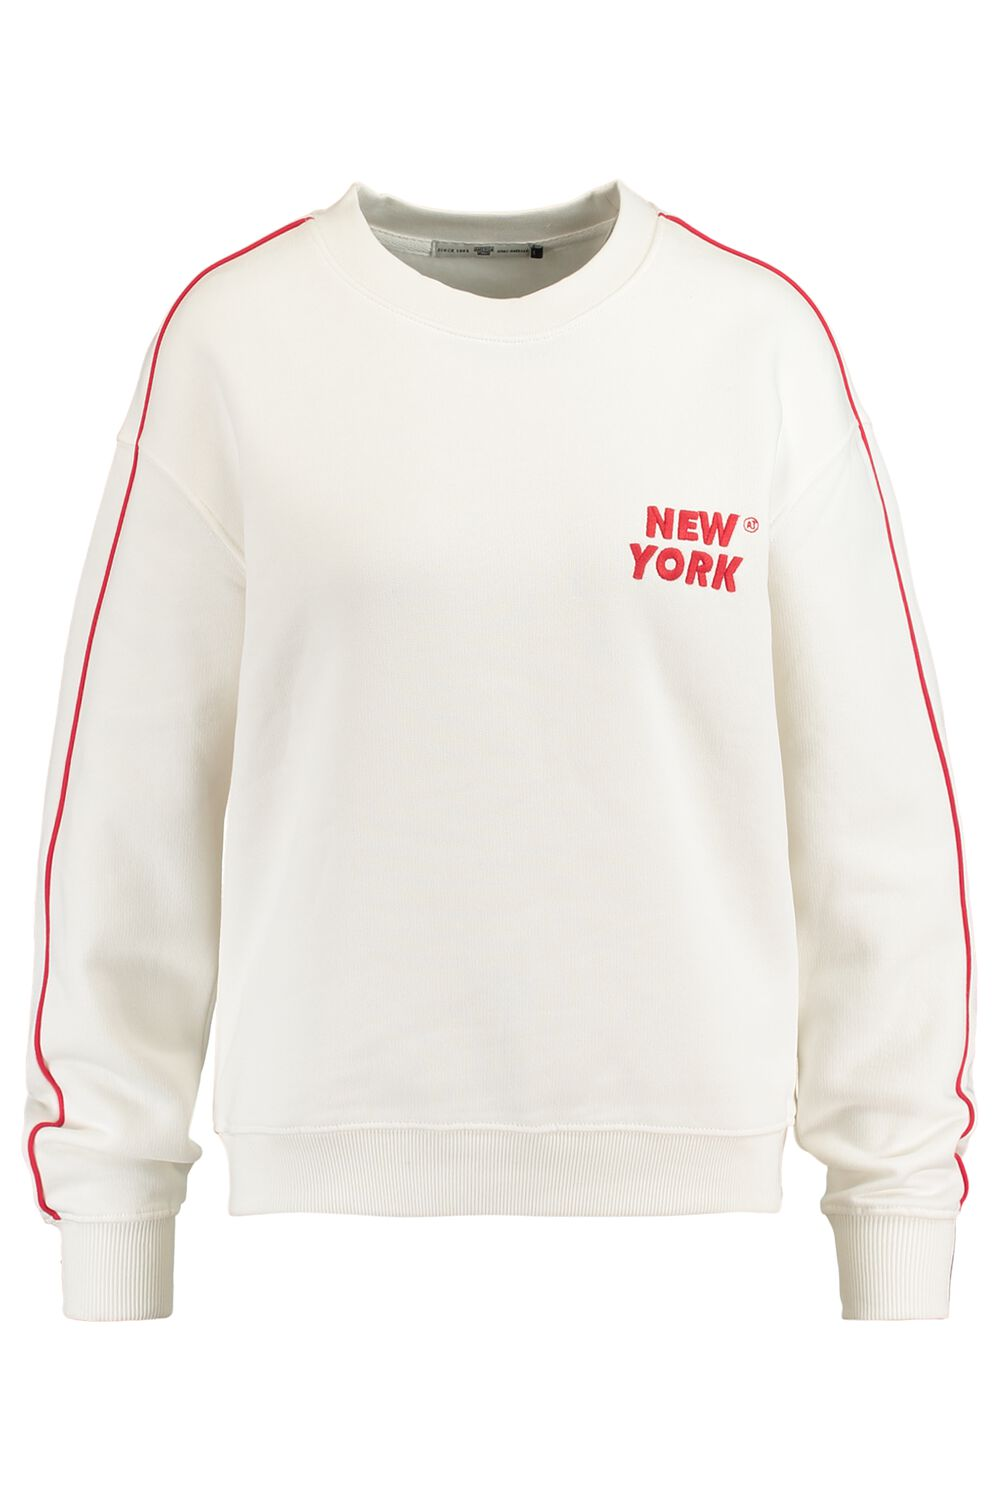 America Today Dames Sweater Sherry Wit